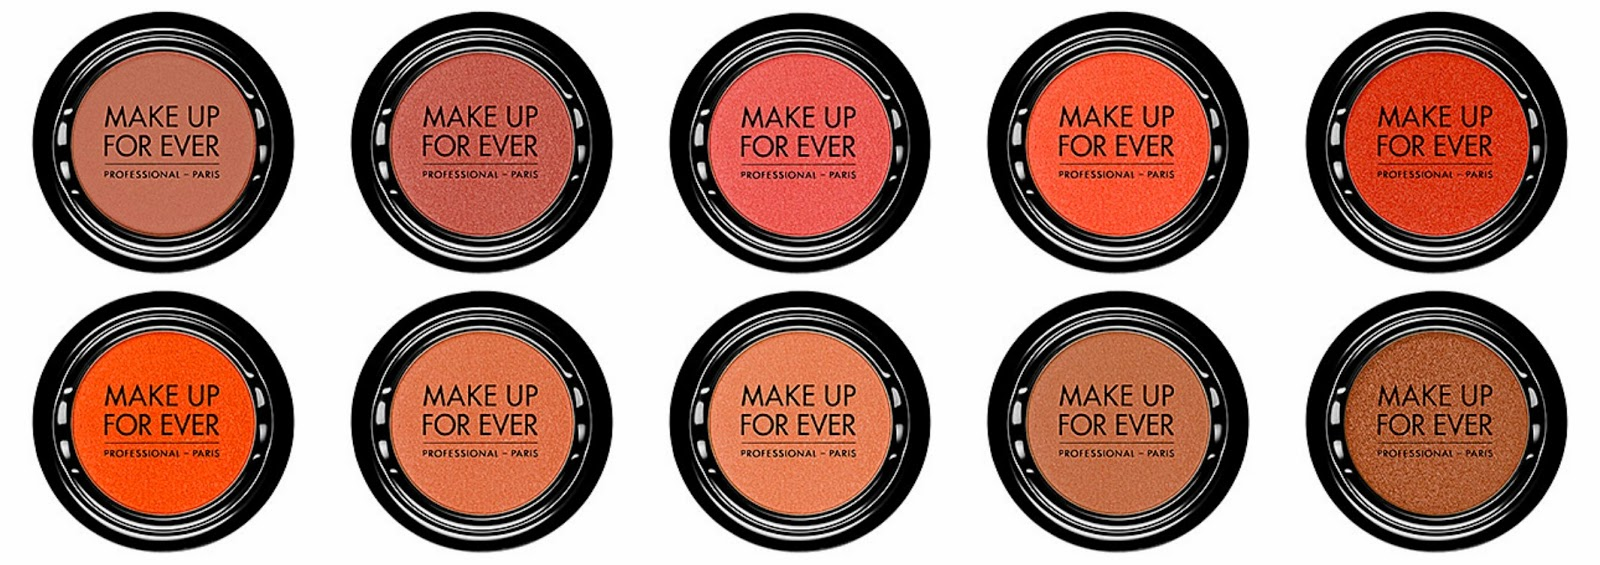 Make Up For Ever Artist Shadow Top from left: S814 Light Rosewood; S812 Tea Pink; S800 Grenadine; S748 Coral; S742 Tomato  Bottom from left: S732 Orange; S718 Salmon; S714 Bisque; S710 Peach; S706 Milk Toffee